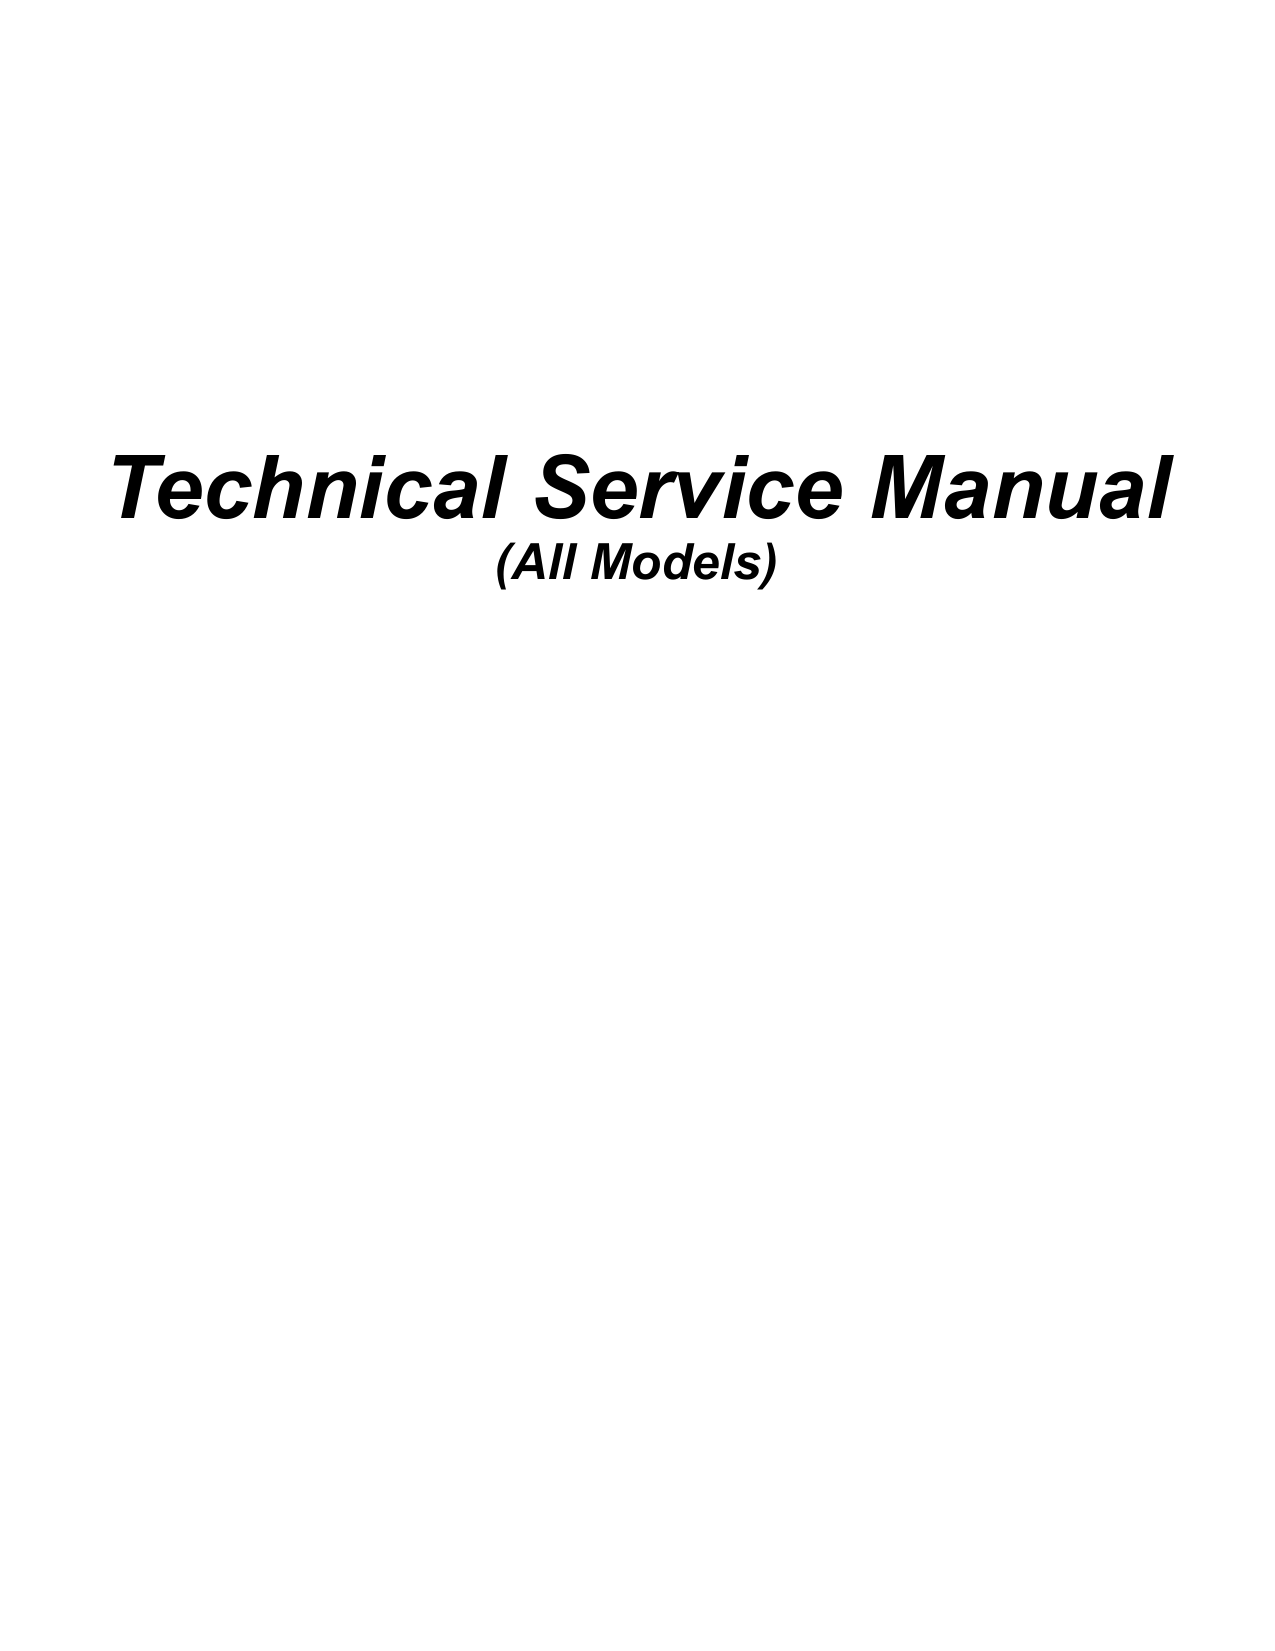 pdf for true t 72f zer manual pdf for true zer t 72f manual